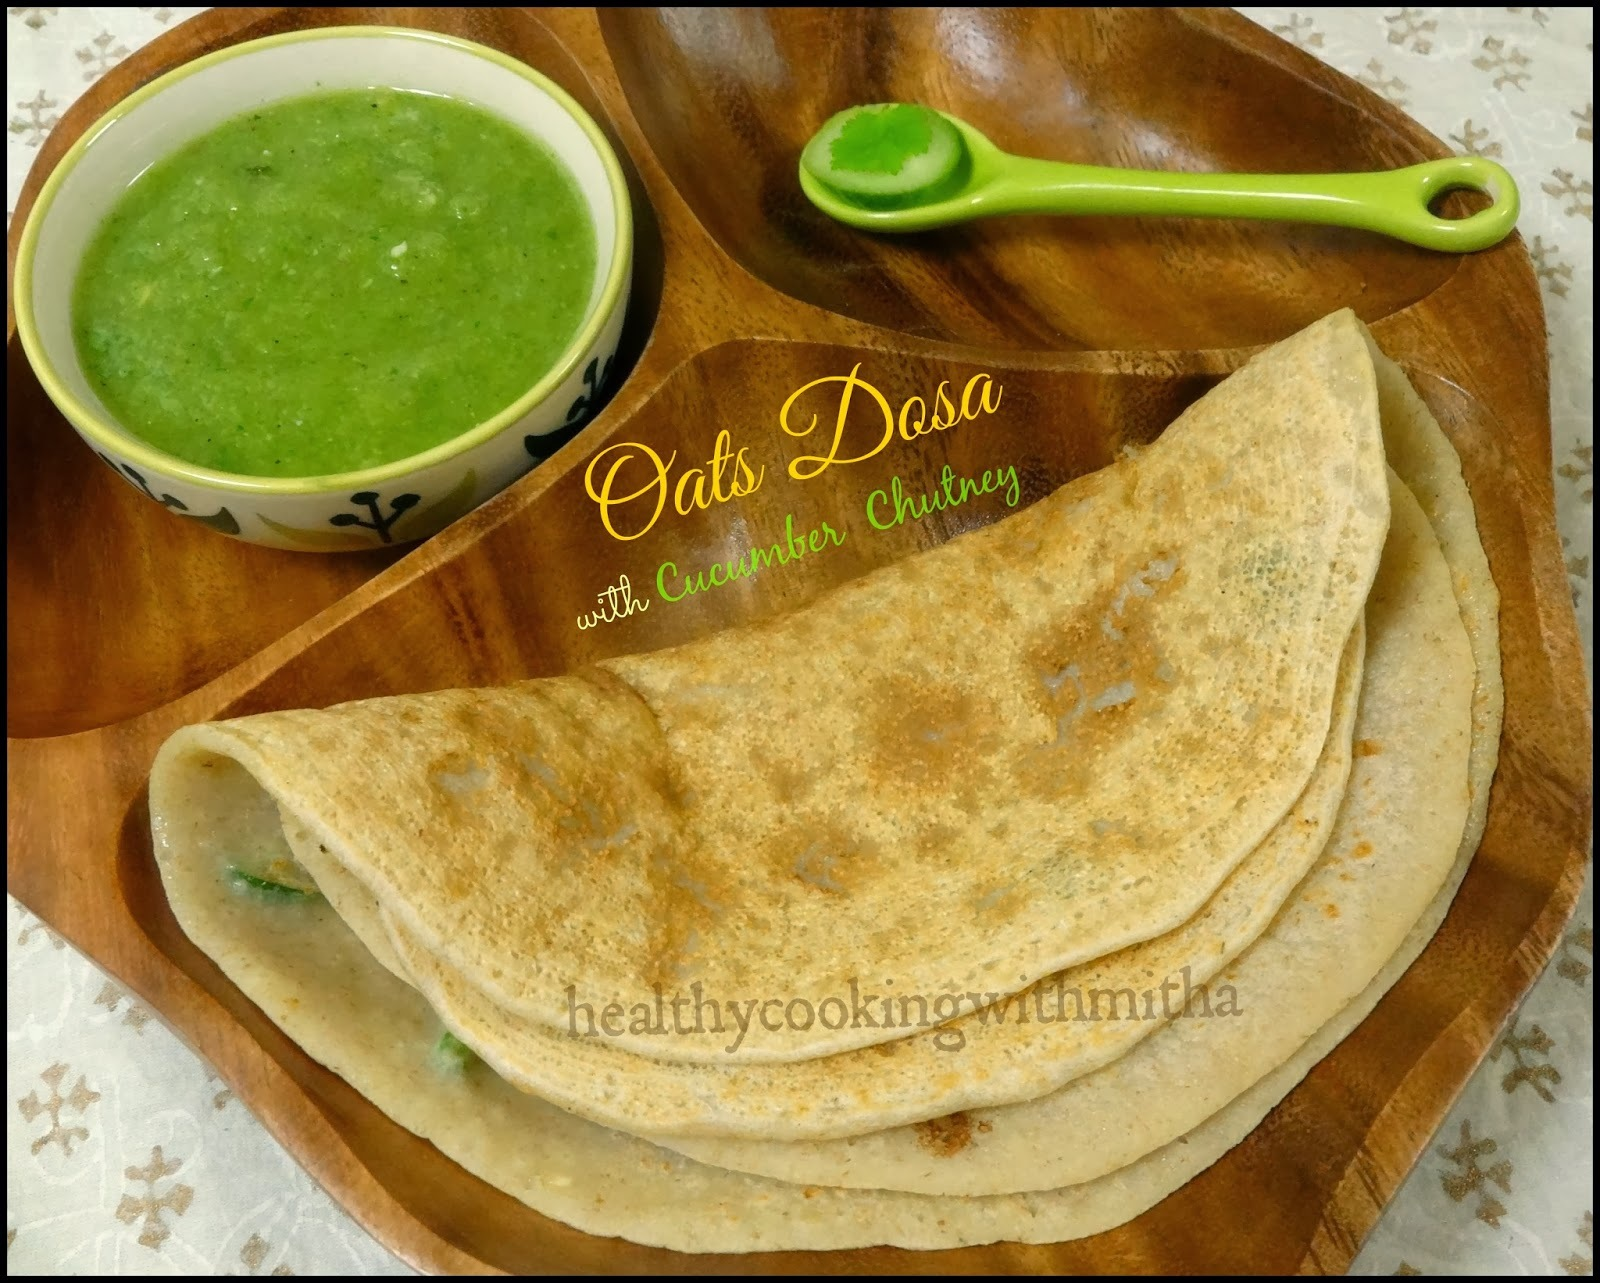 Instant Oats Dosa with Cucumber chutney